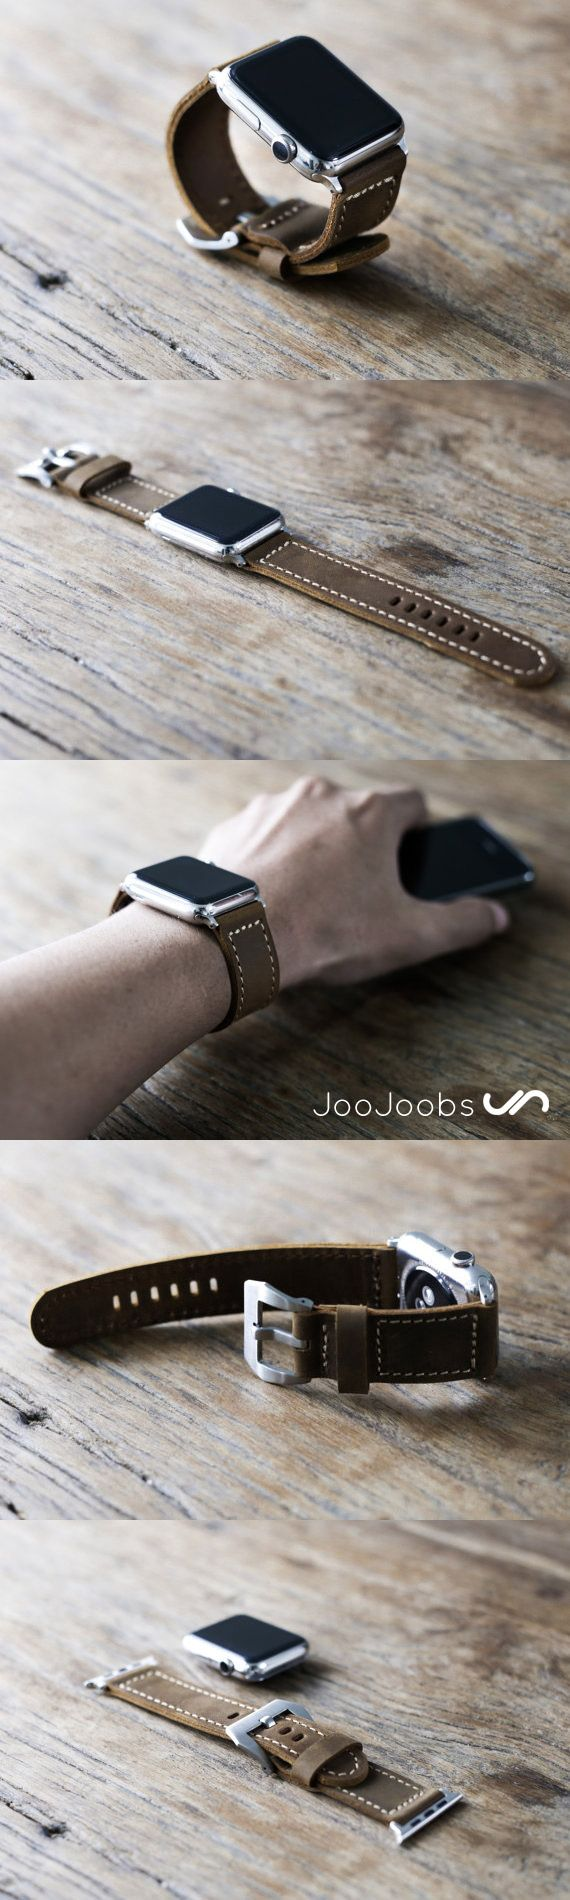 Checkout this beautiful, handmade, rustic, leather apple watch strap by the fine folks at JooJoobs. Love it, love it, love it!!